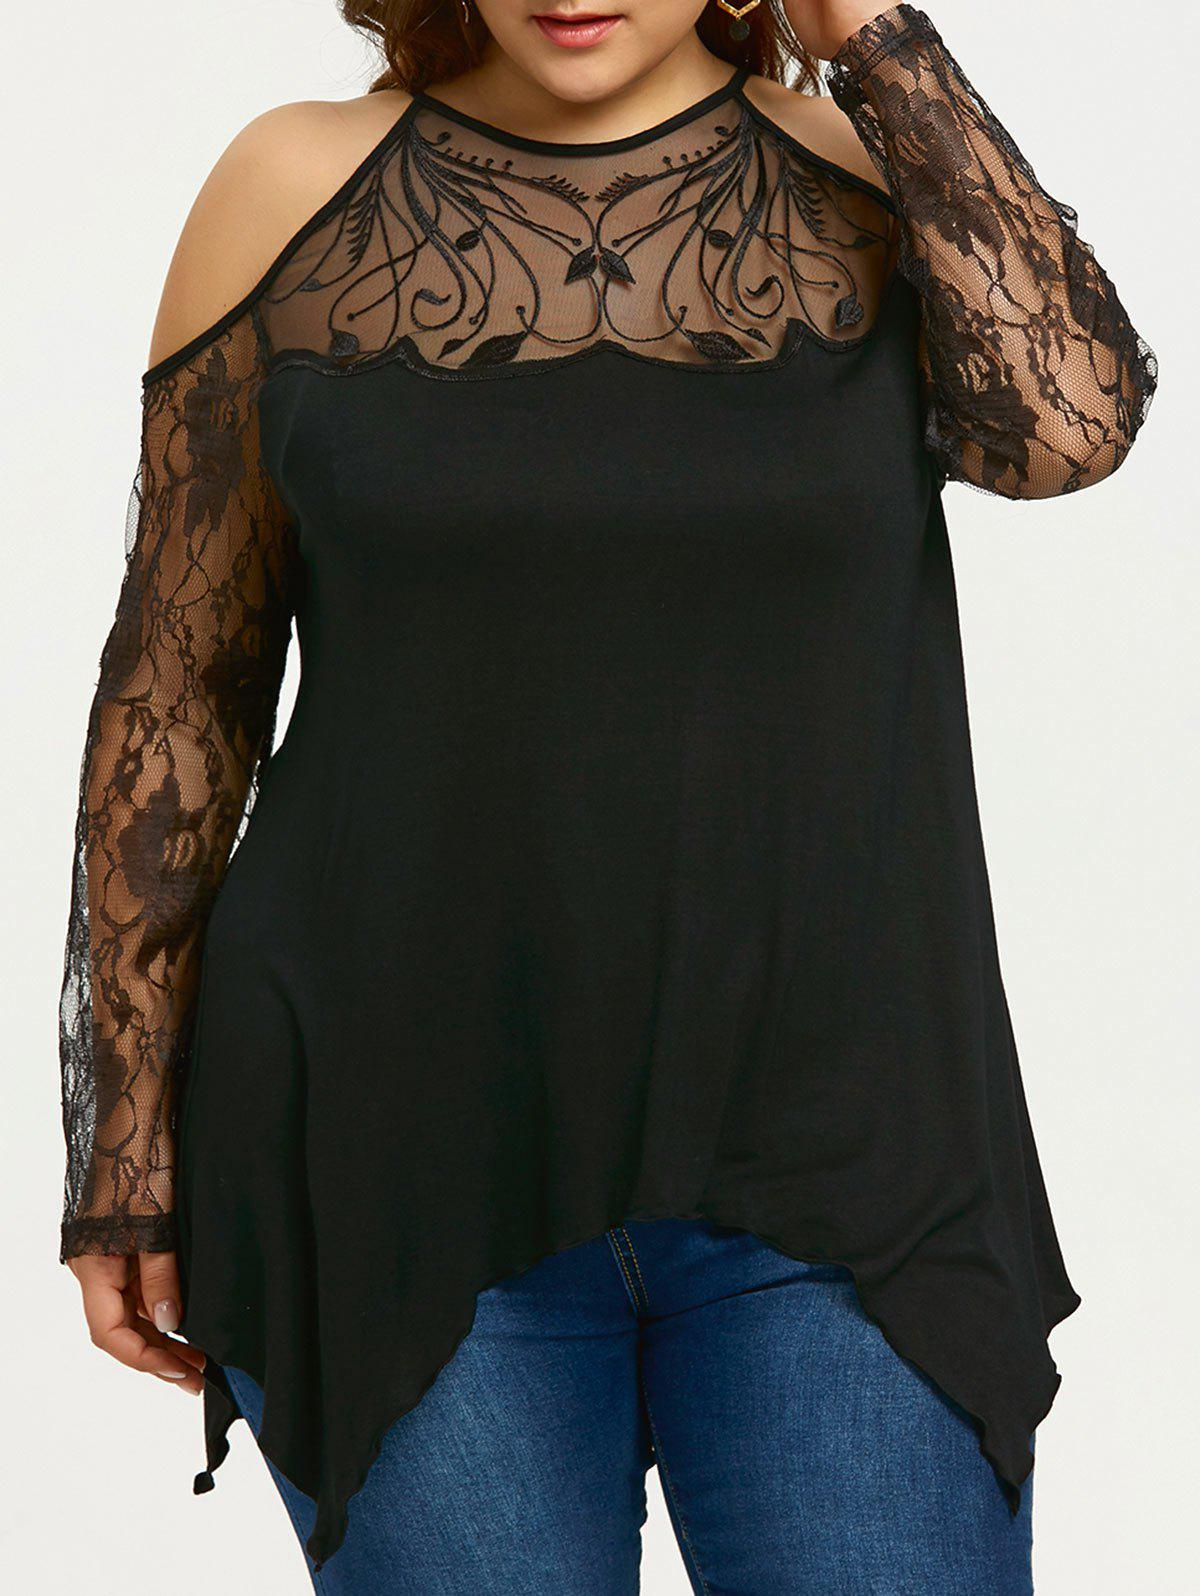 Plus Size Sheer Cold Shoulder Top - BLACK 5XL